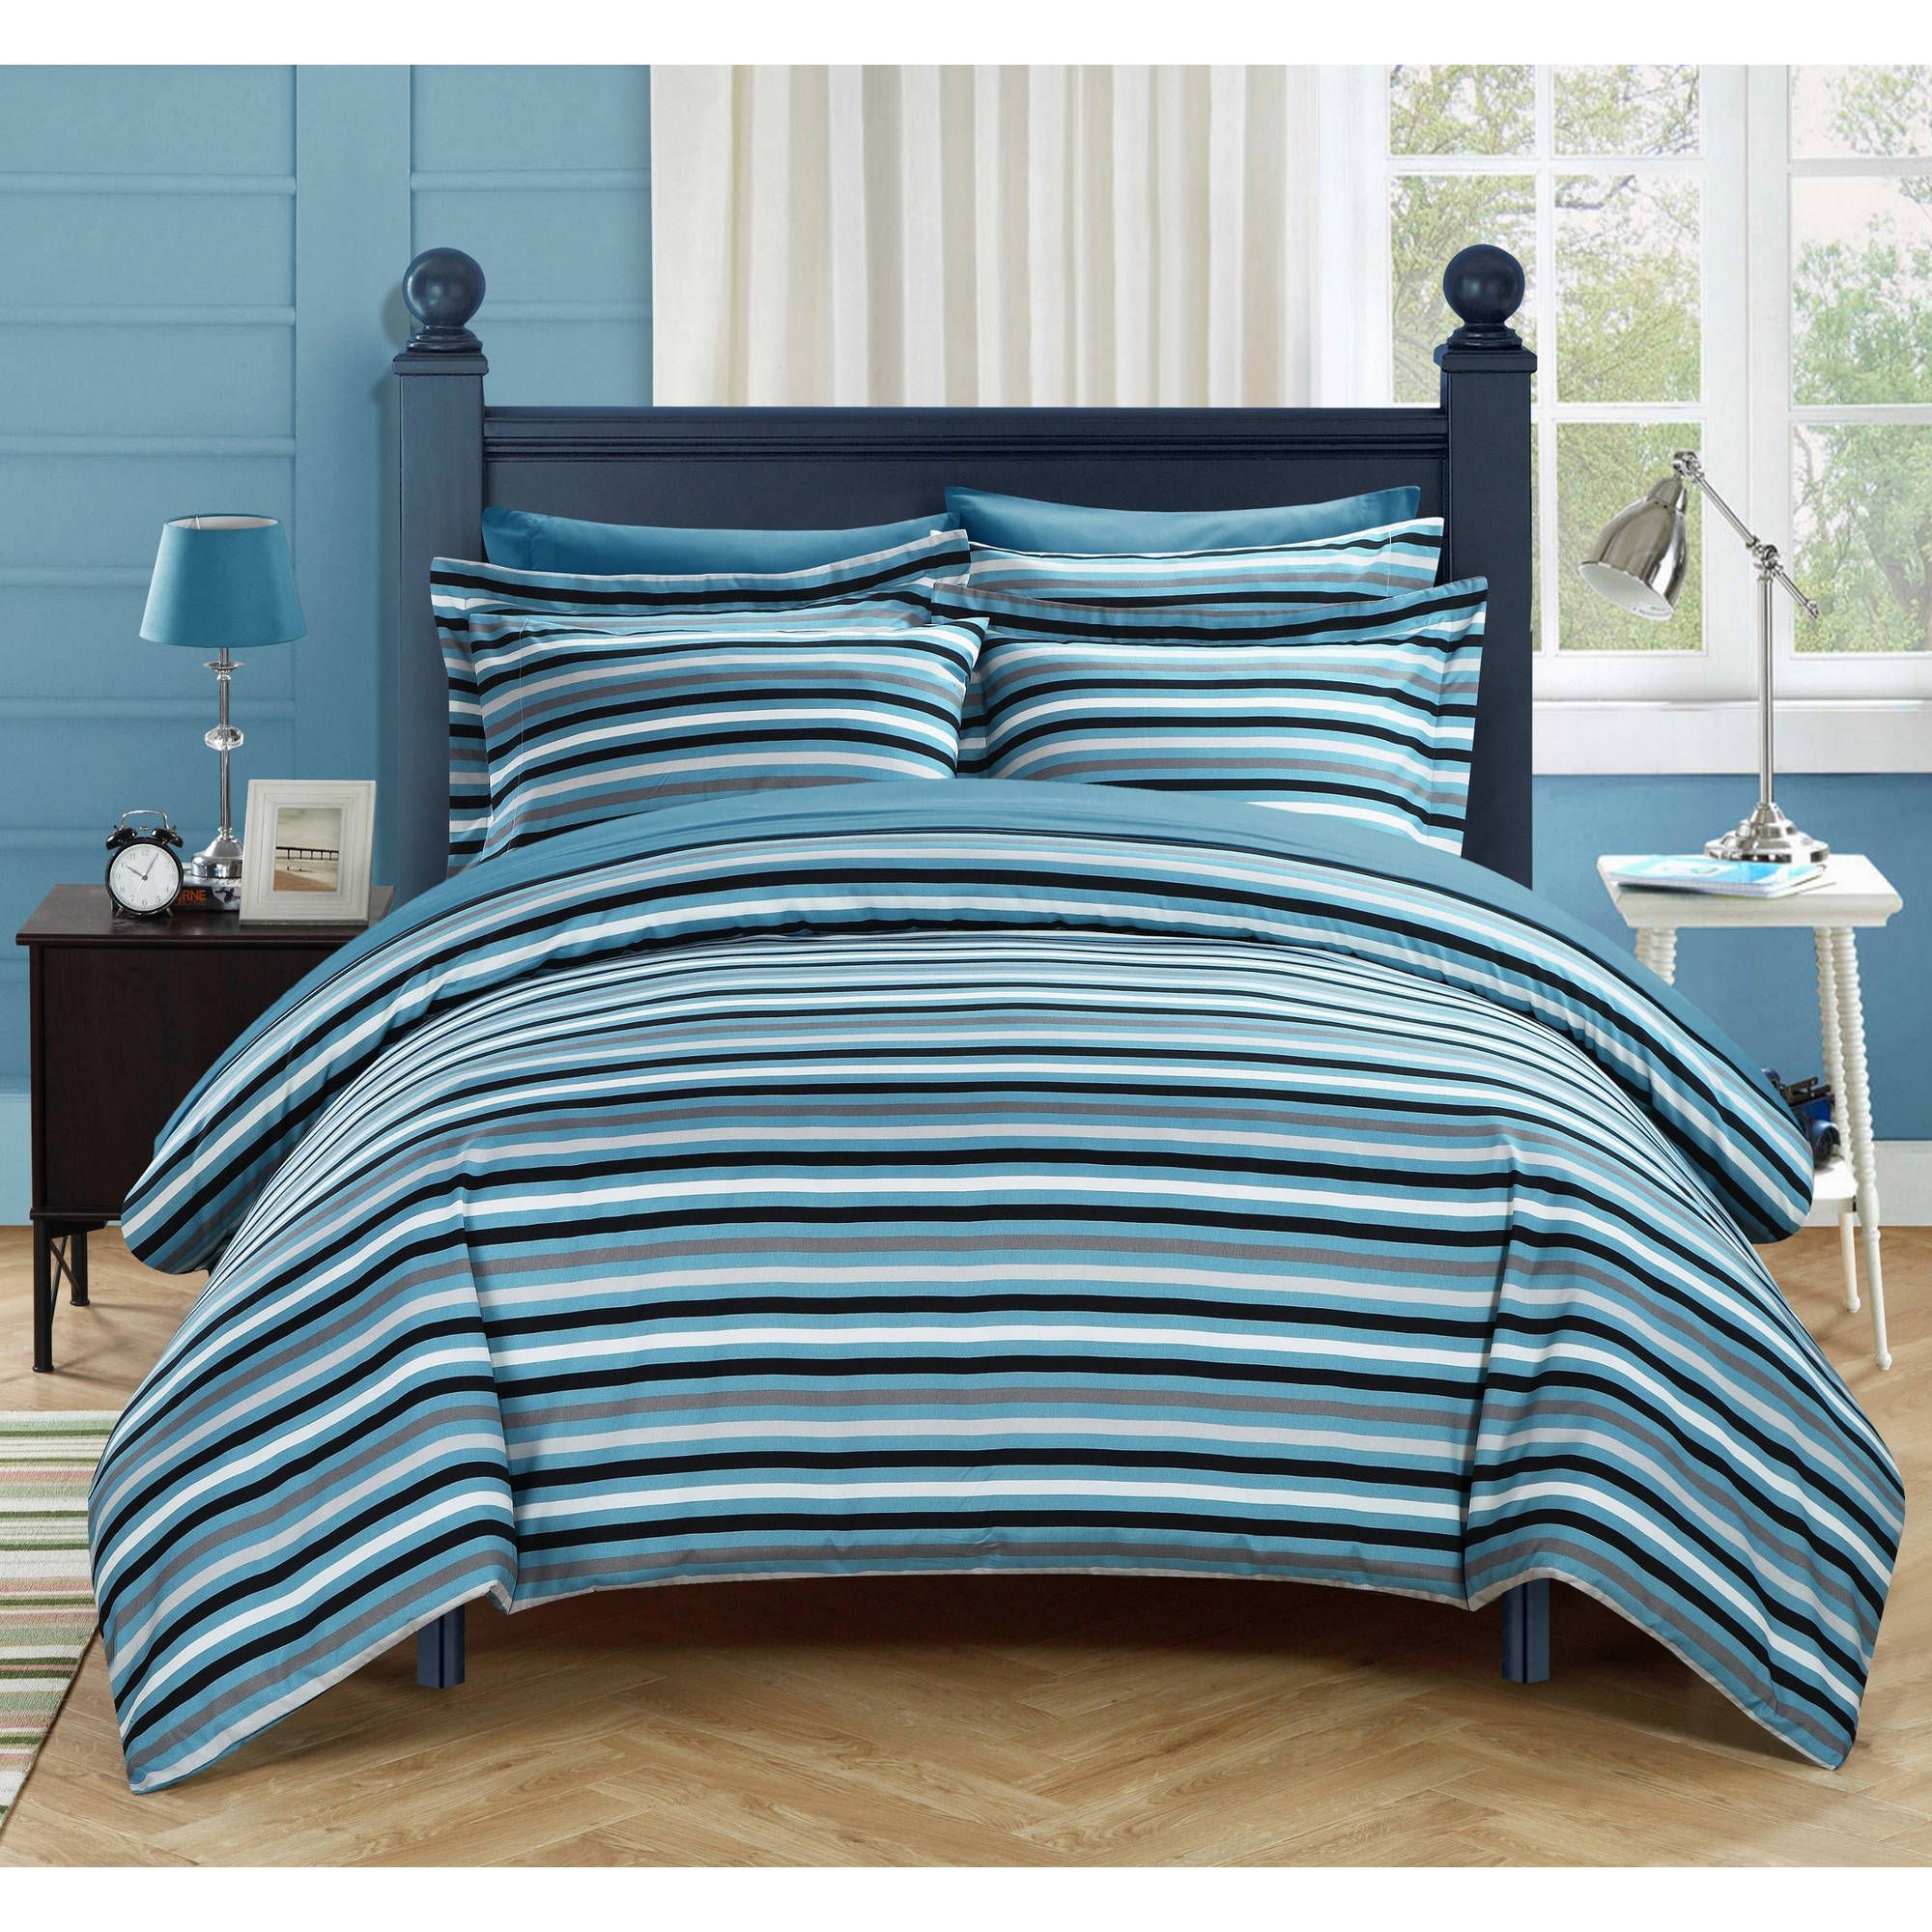 Vasler 9-Piece Bedding Duvet Cover Set